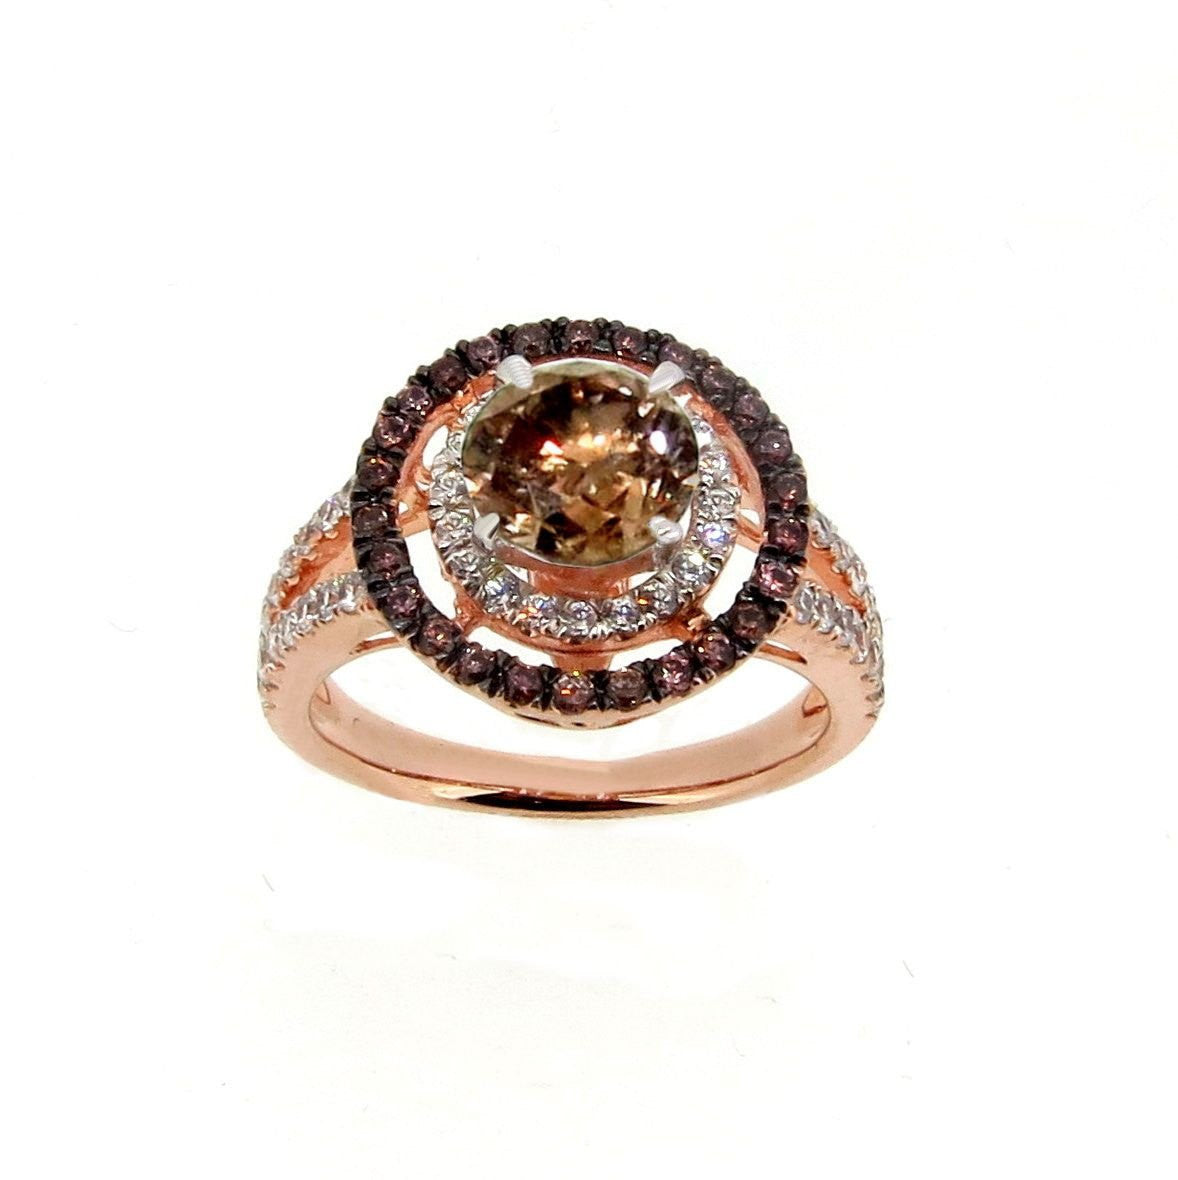 1 Carat Chocolate Brown Smoky Quartz White & Chocolate Brown Diamond Accent Stones, Floating Halo Rose Gold Engagement Ring, , Anniversary Ring - SQ94640